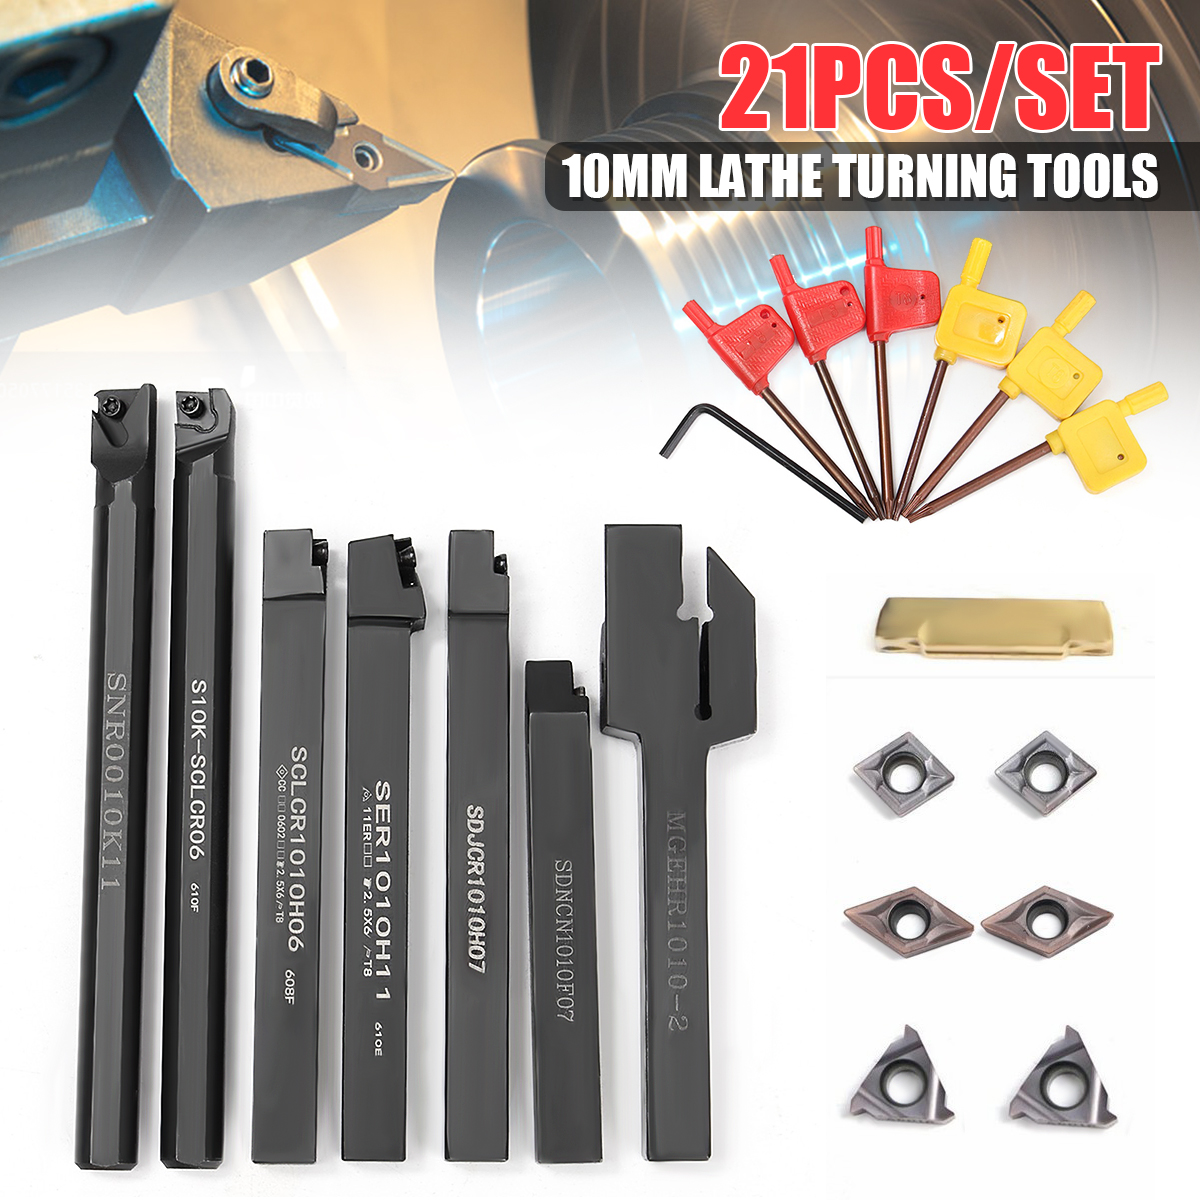 7pcs 10mm Lathe Turning Tool Holder Boring Bar With 7pcs DCMT/CCMT Carbide Insert And 7pcs Wrenches hot sale 7pcs set of 12mm cnc lathe turning tool holder boring bar with dcmt tcmt ccmt cutting insert with wrench